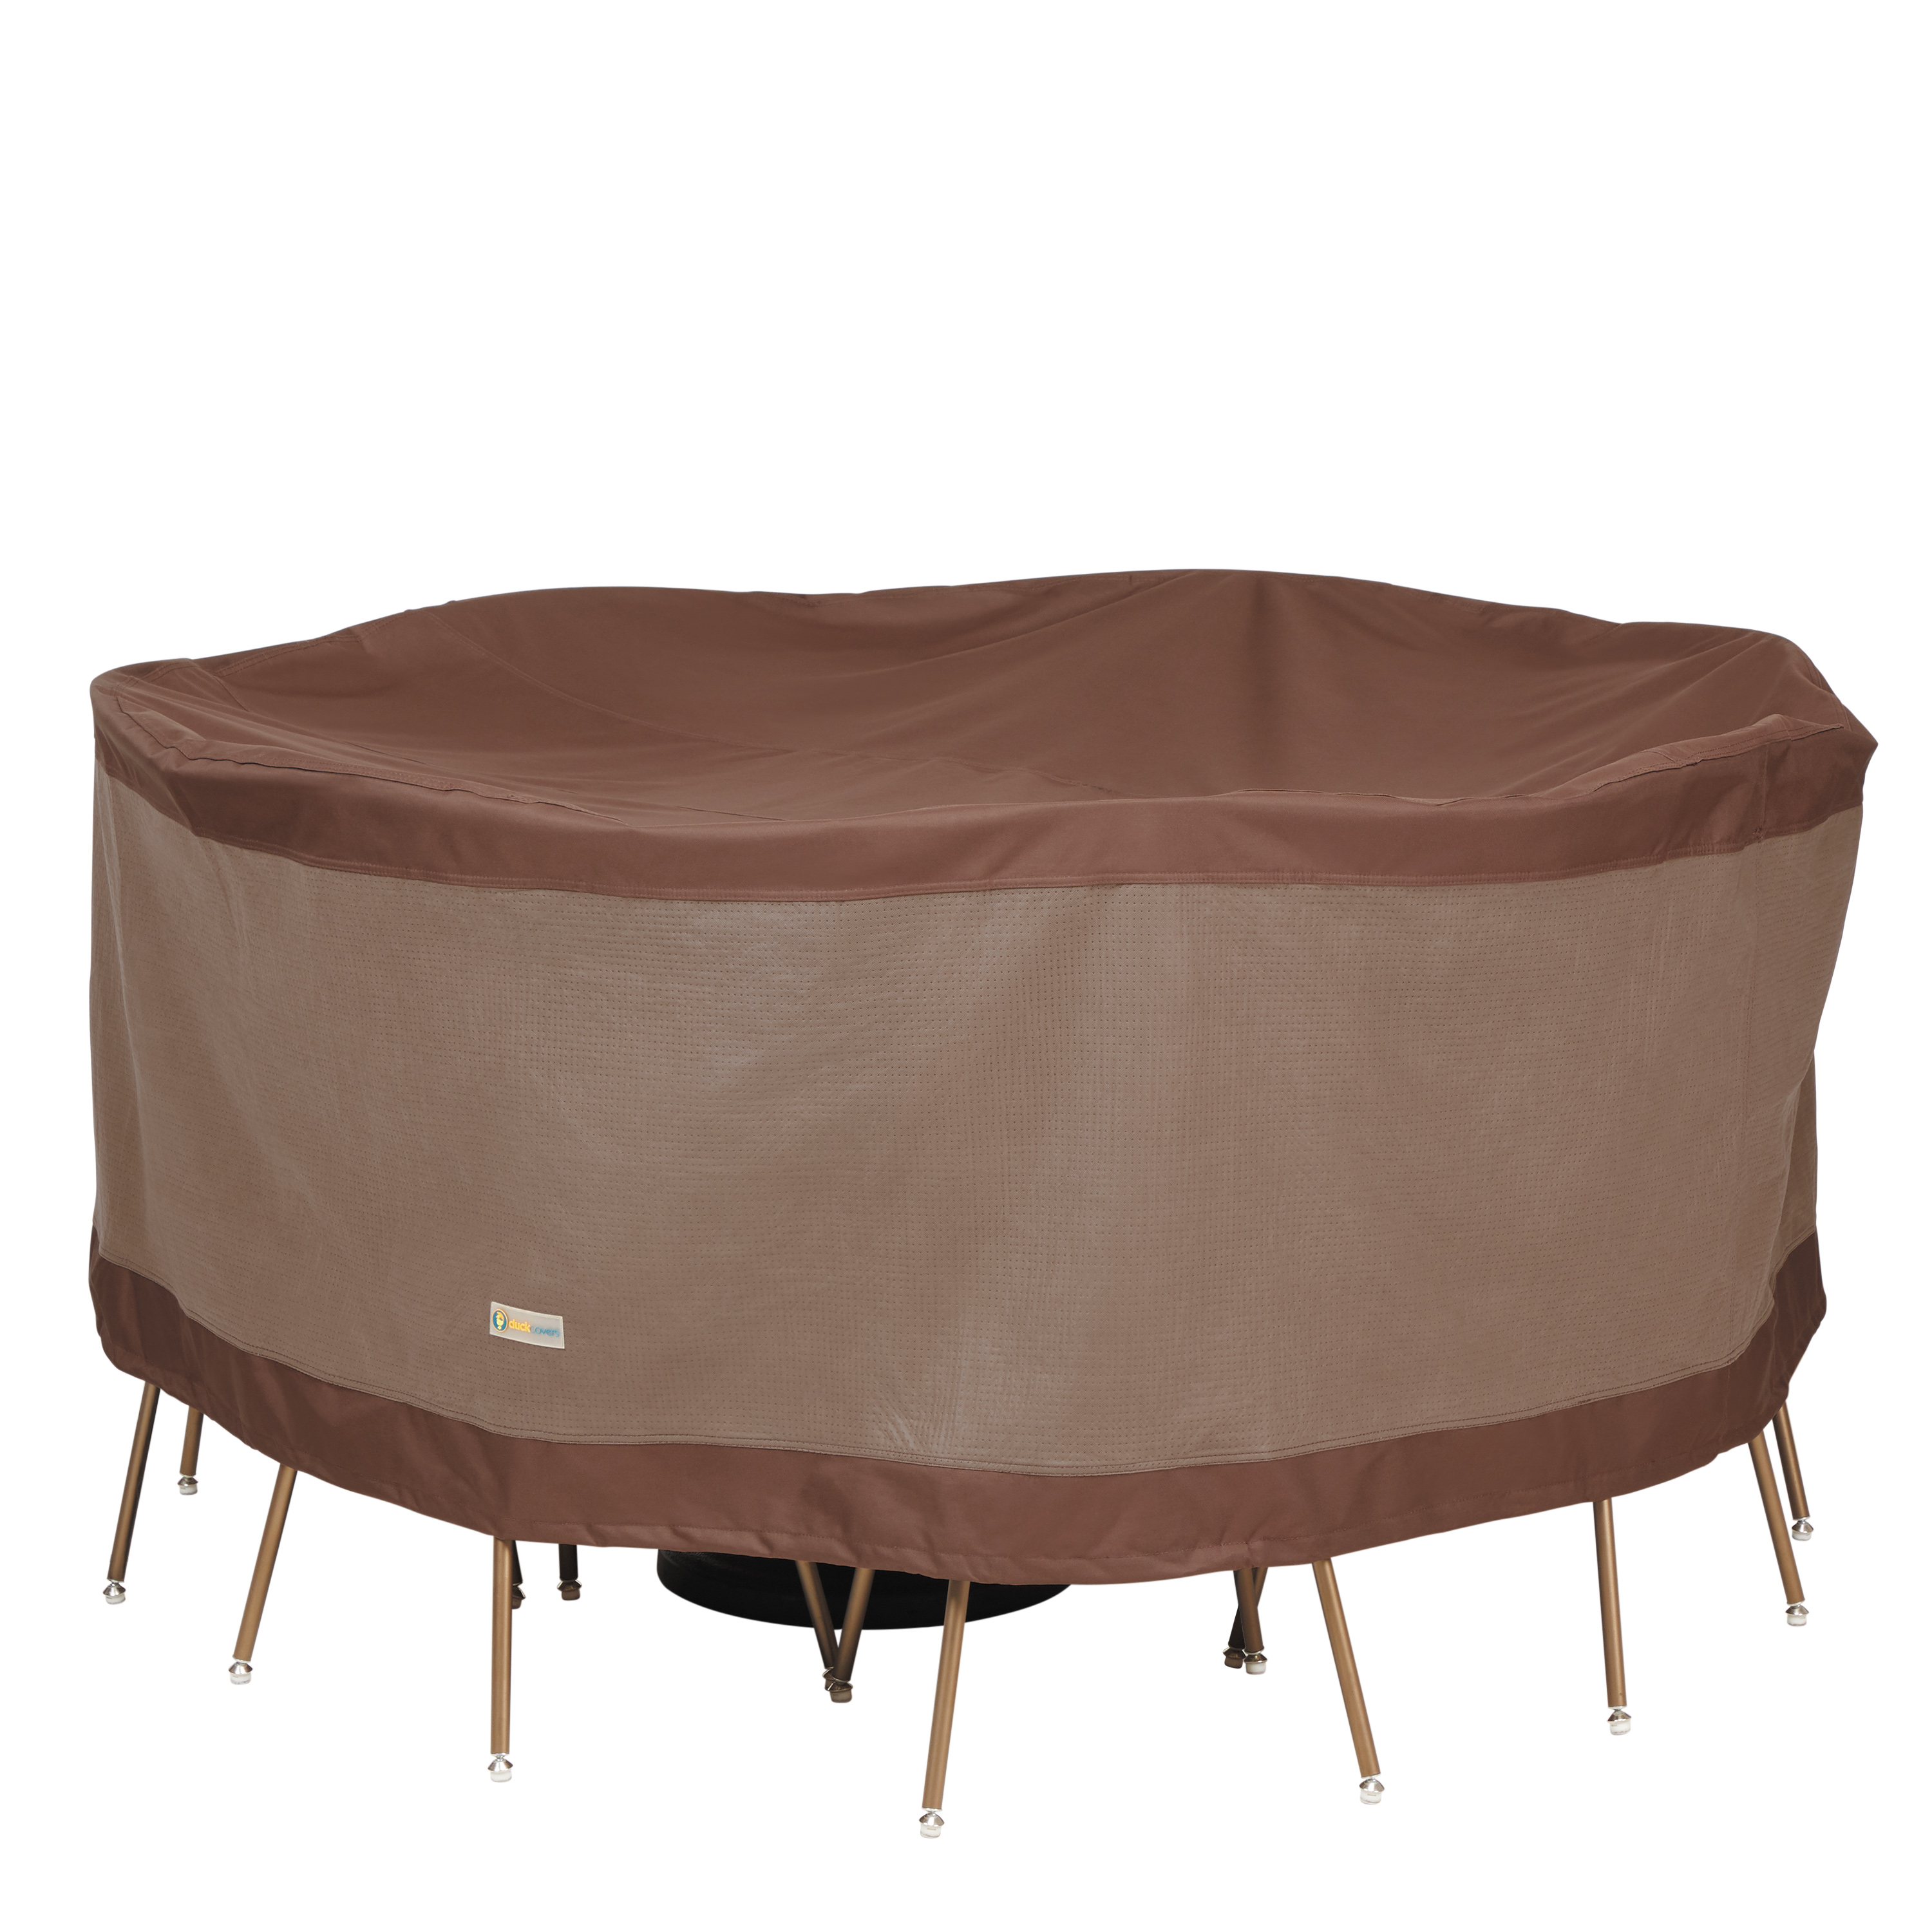 duck covers ultimate waterproof 72 inch round patio table chair set cover